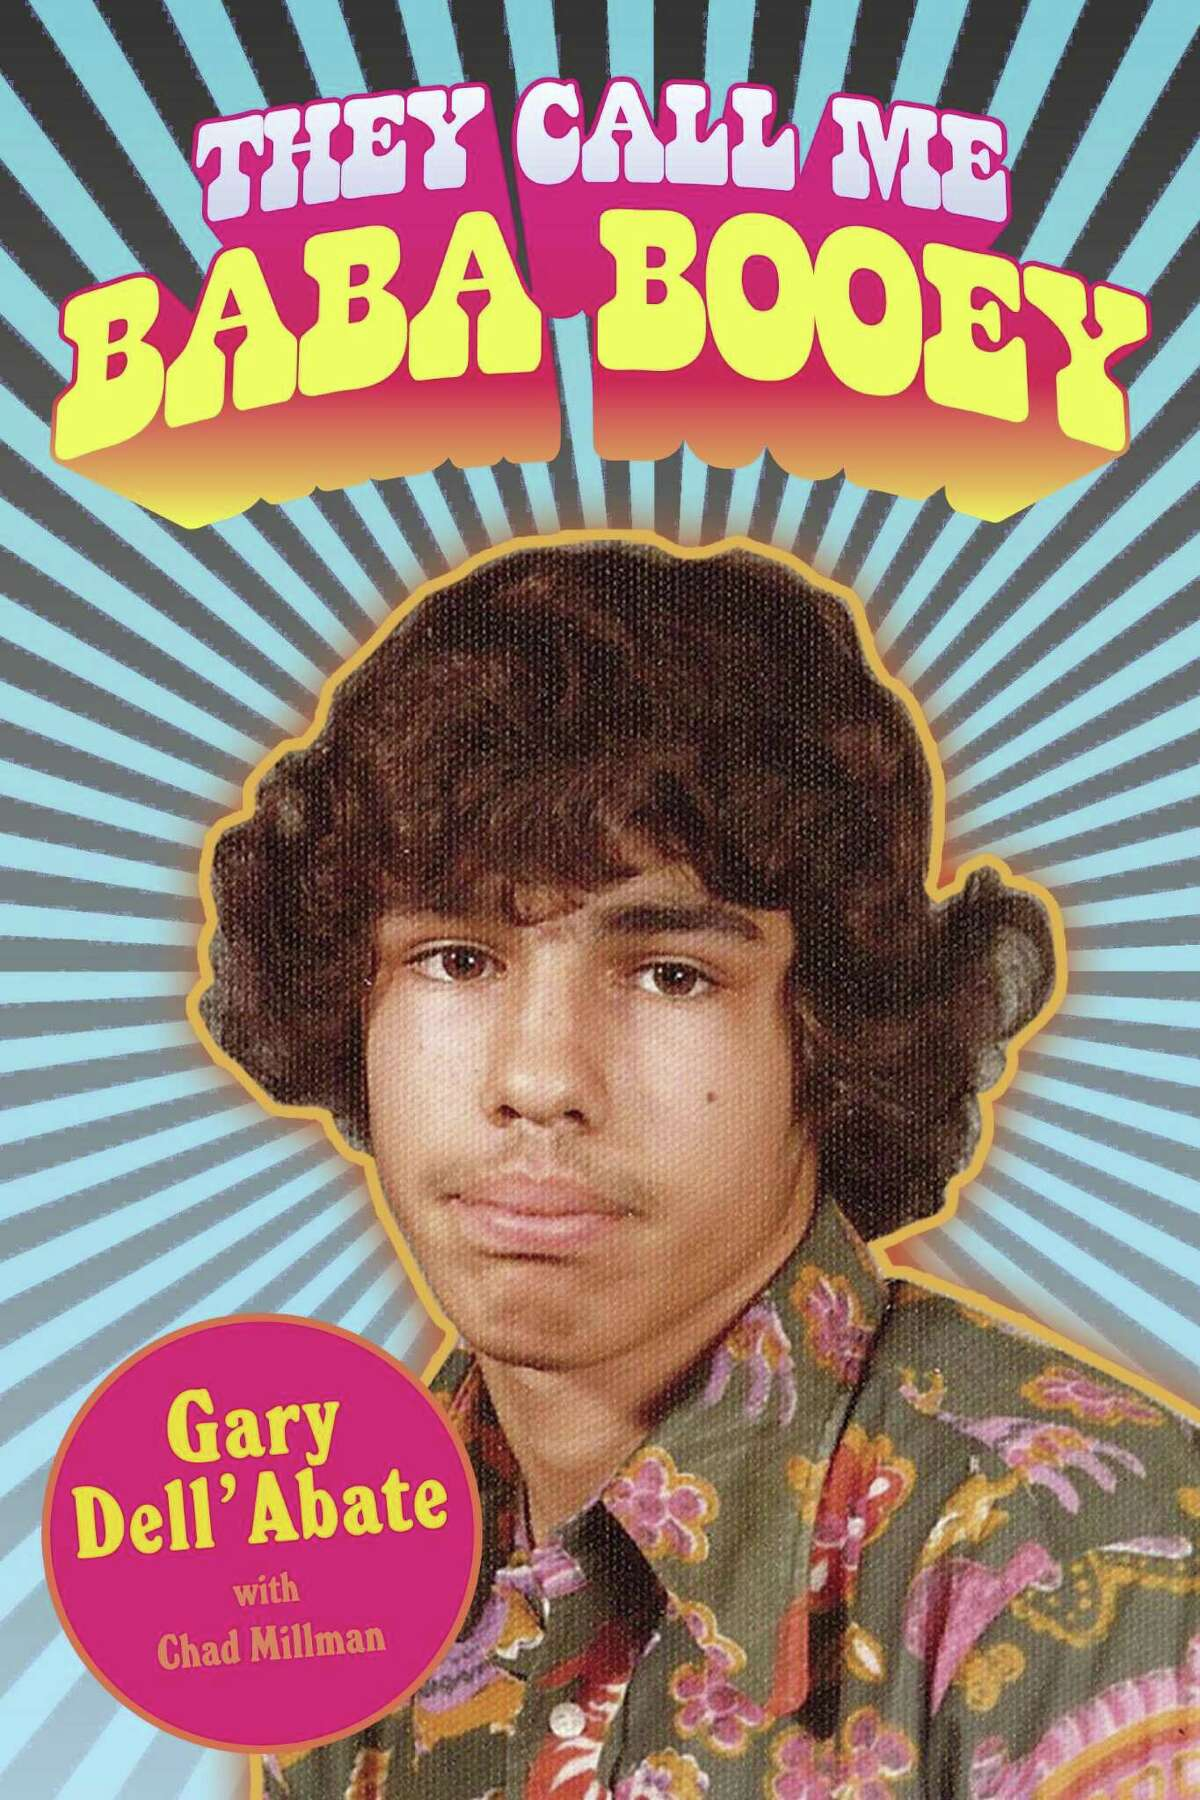 Old Greenwich resident and Howard Stern Show executive producer Gary Dell'Abate wrote his first book,